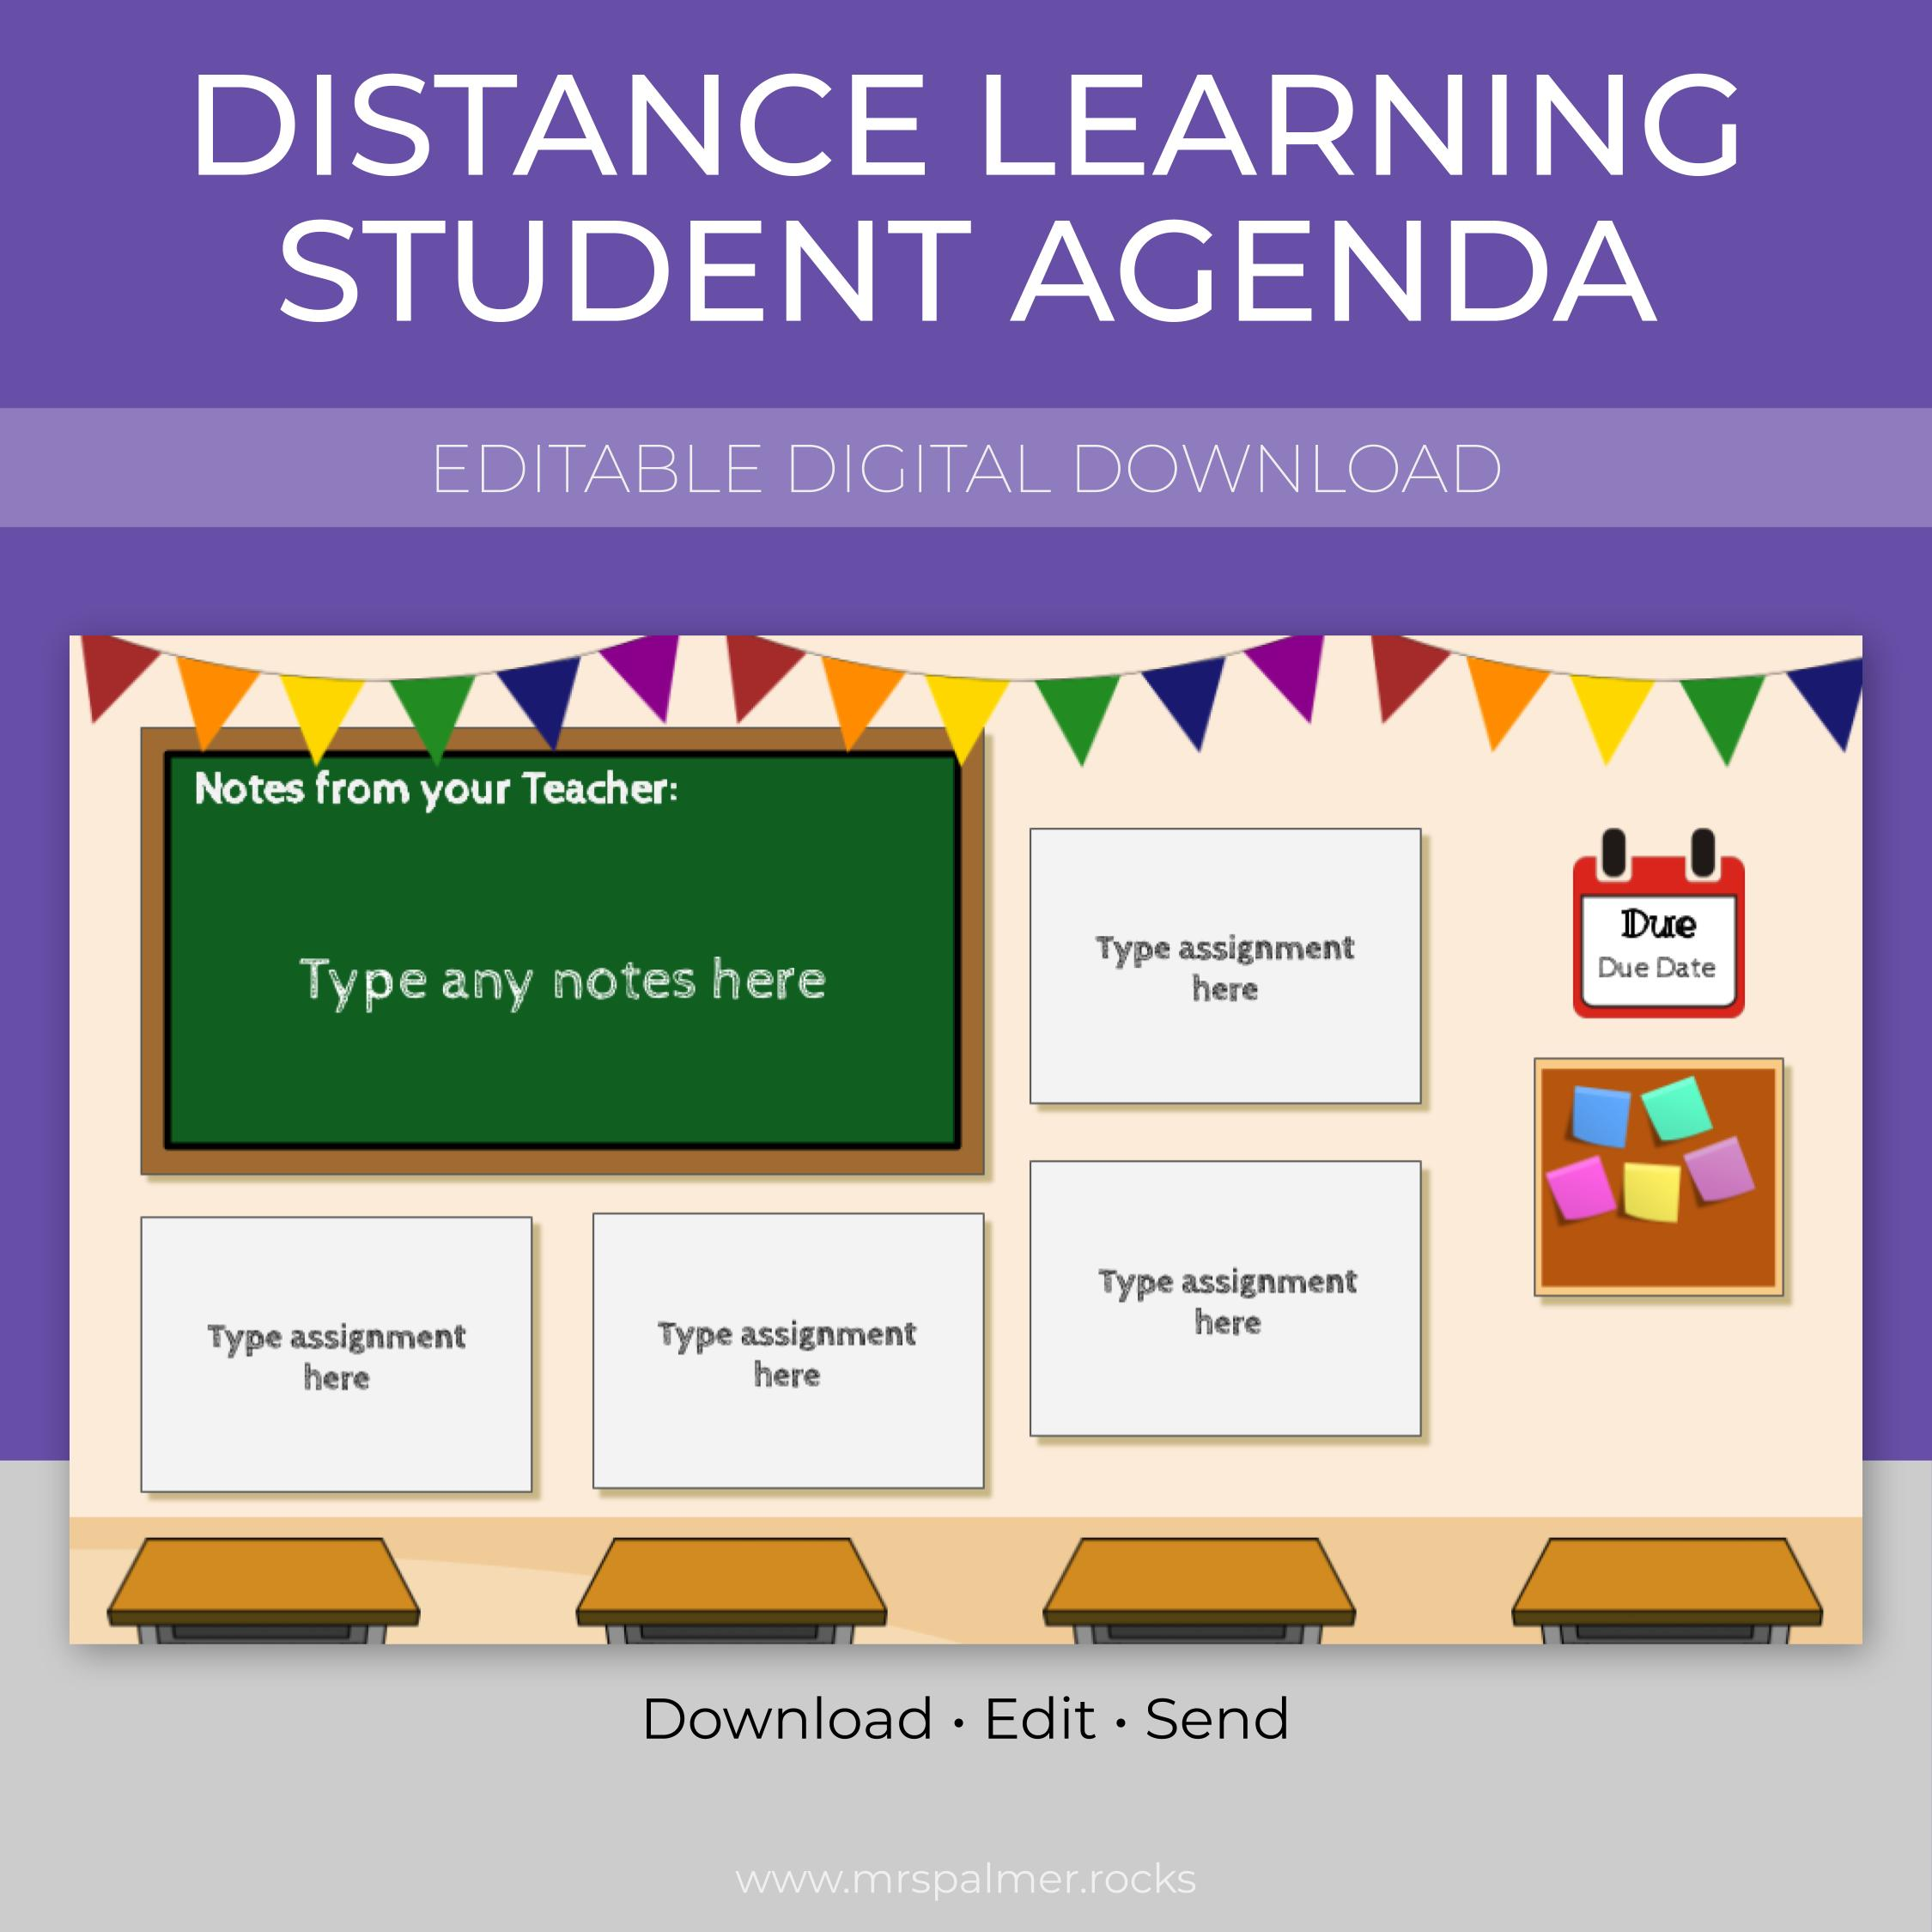 Distance Learning Student Agenda 2